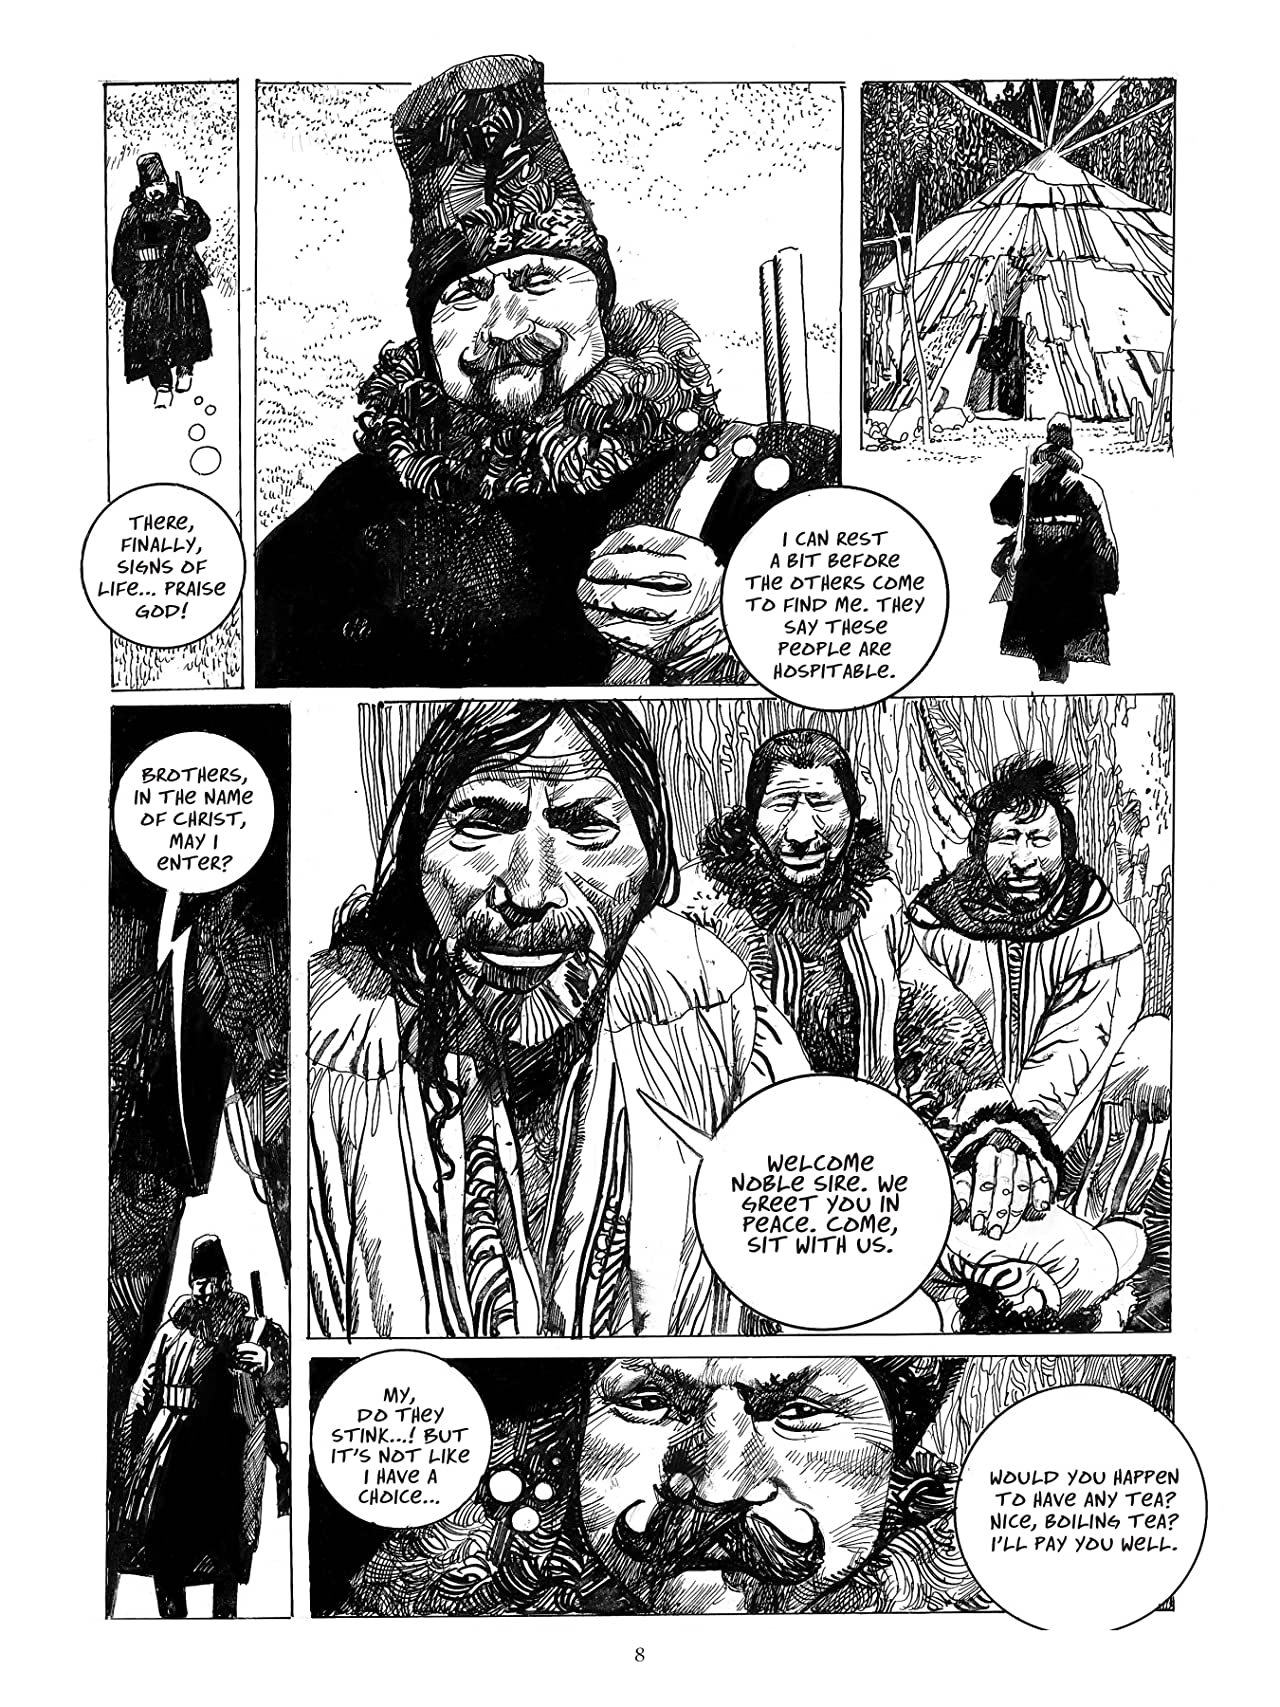 The Collected Toppi Vol. 5: The Eastern Path